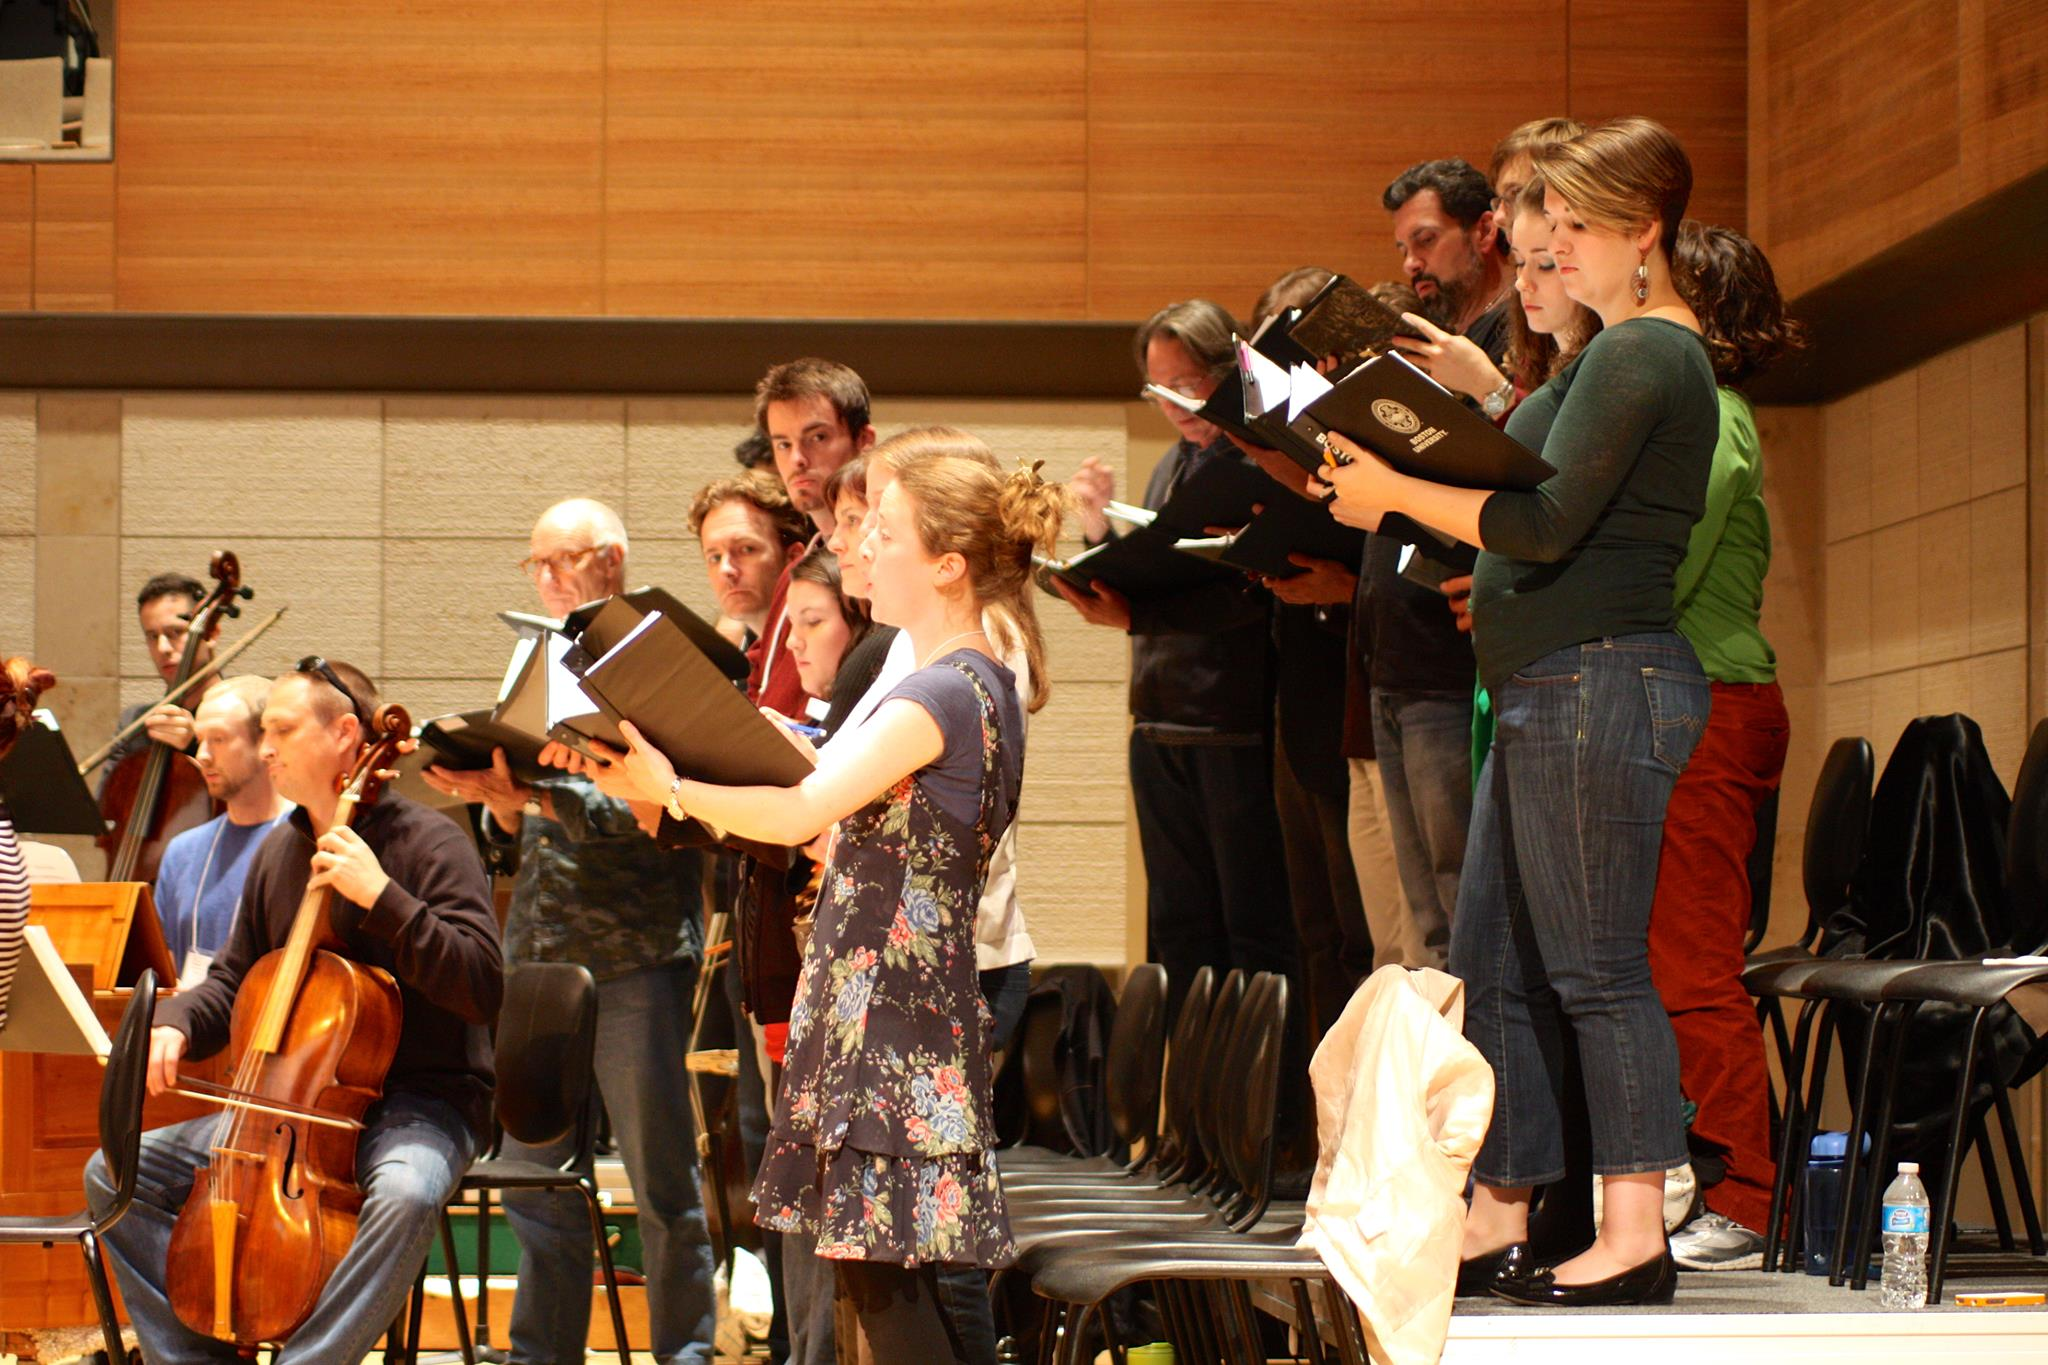 Biber Salzburg Mass dress rehearsal with American Bach Soloists, July 2013, North American premiere.